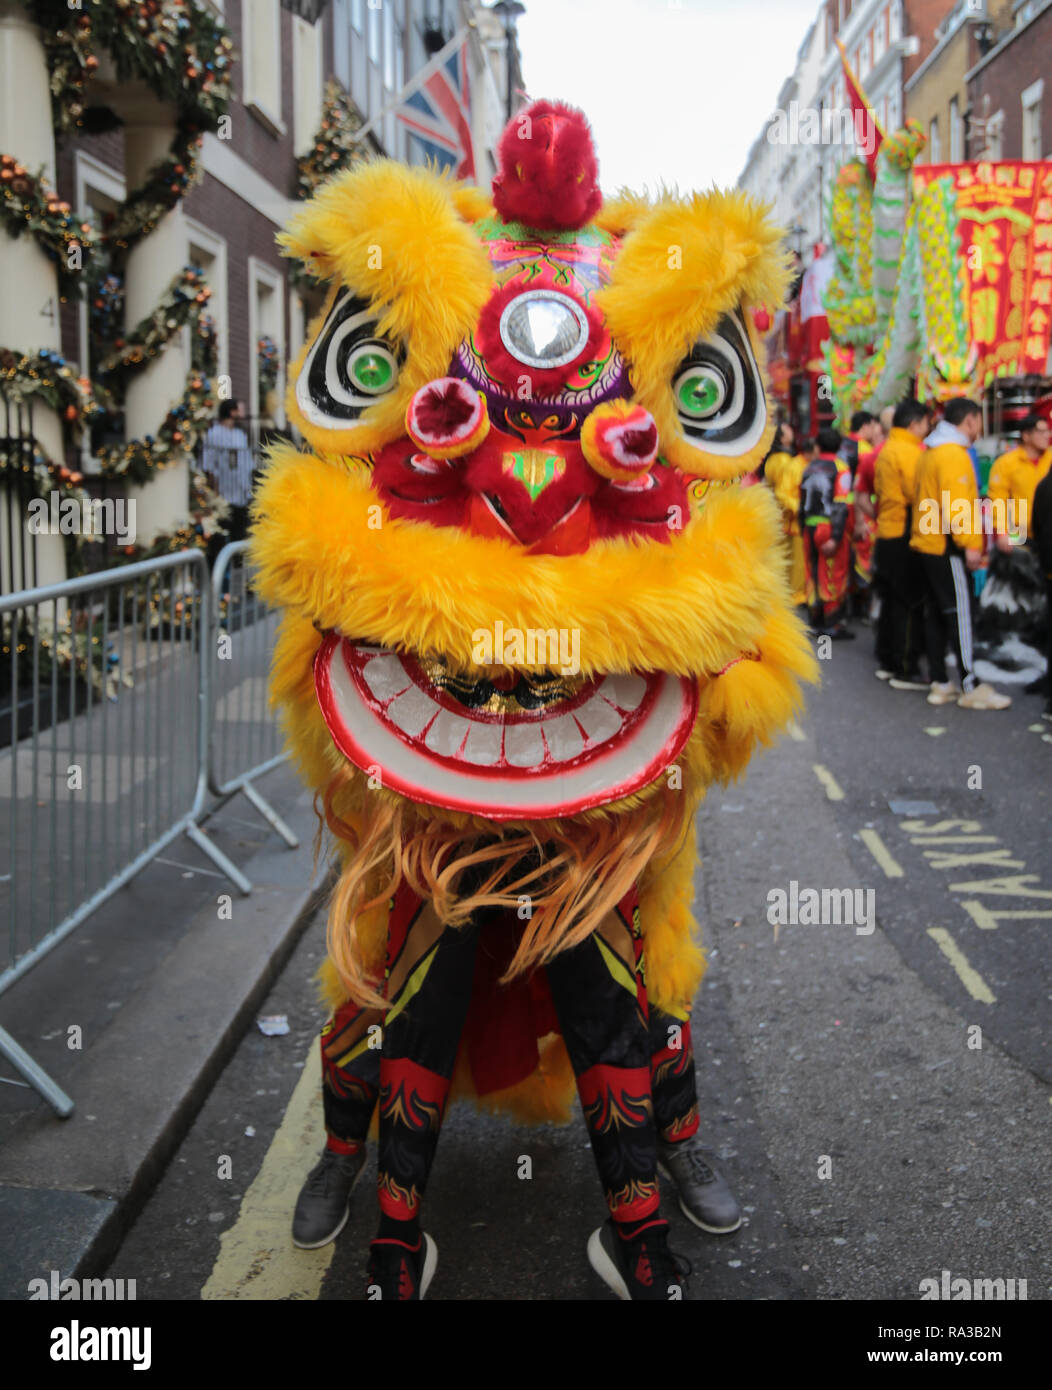 London UK 01.January.2019 The first parade was  in 1987 with 2,000 performers, but the event has grown and promises over 10,000 participants, for the 2019 Parade , from the USA, UK, Europe and beyond, to the delighted of street  packed with families for the annual event audience of over 500,000 and a TV audience, which reached more than 300,000,000 in 2018. Credit: Paul Quezada-Neiman/Alamy Live News - Stock Image